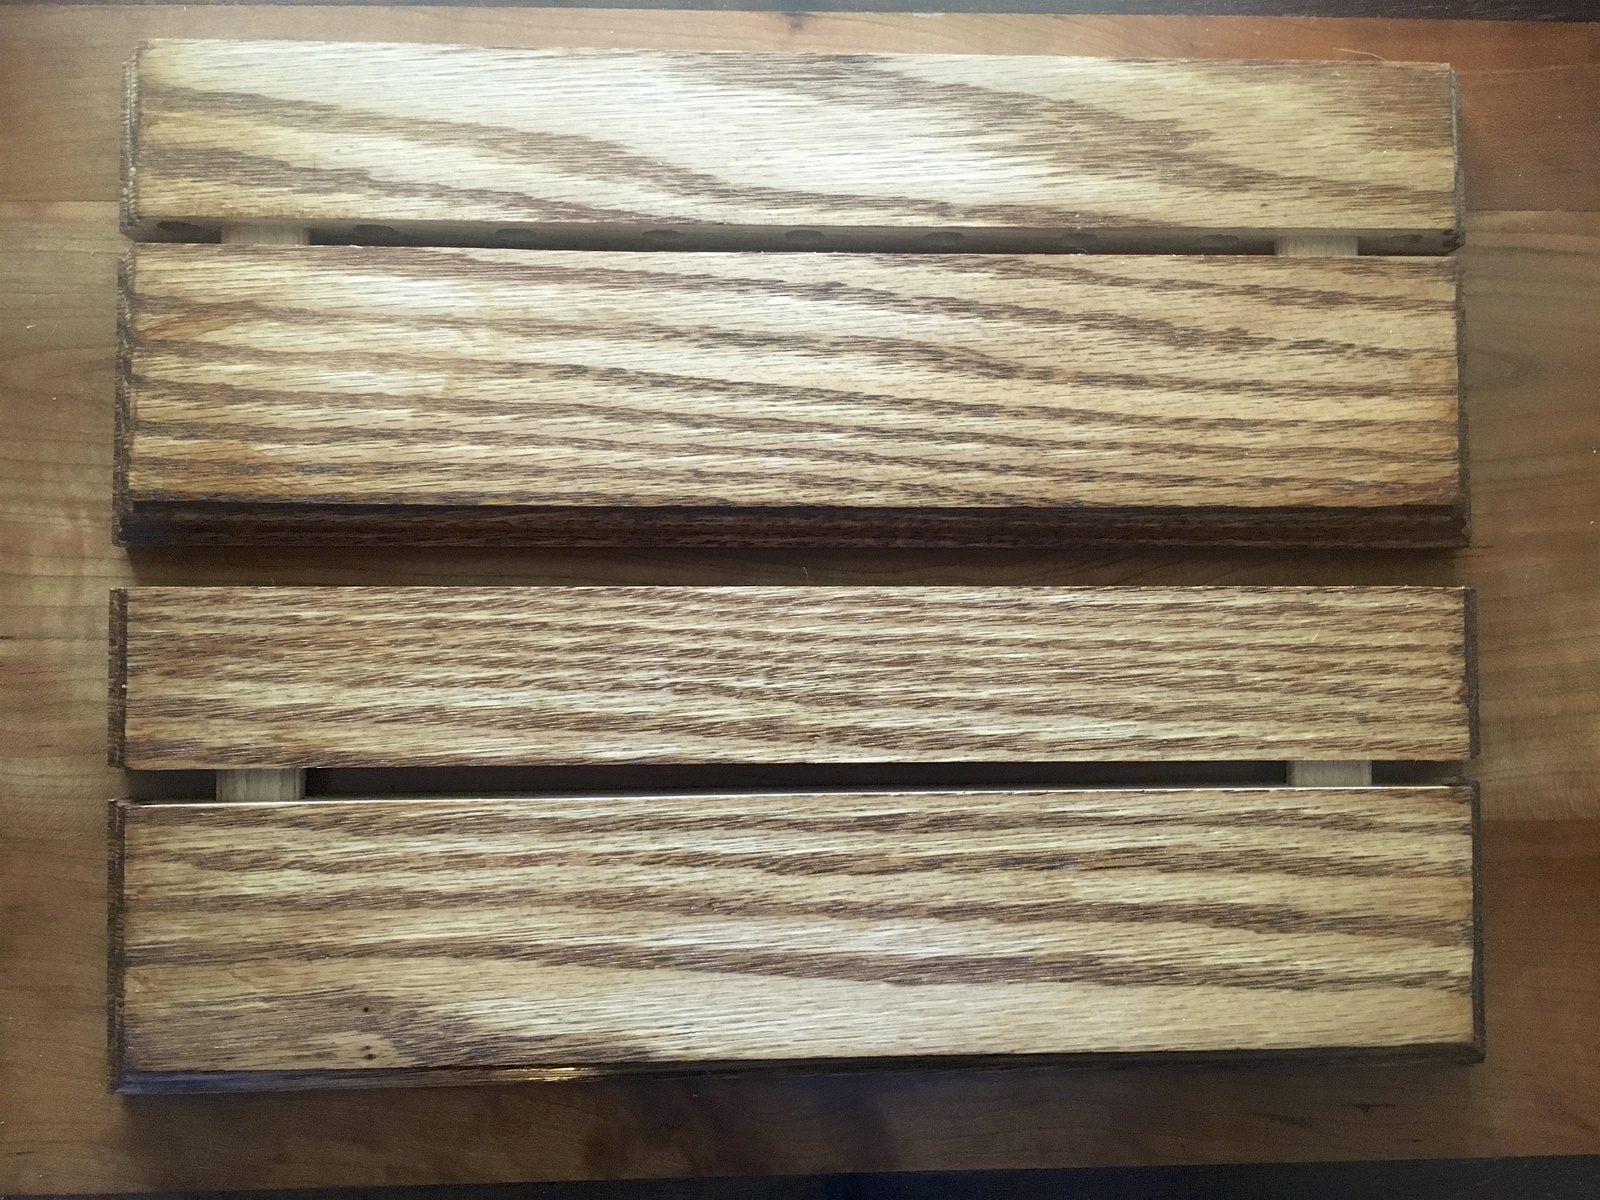 Primary image for floating shelves 12 x 4 x 3/4 handcrafted out of sold red oak wood, set of two